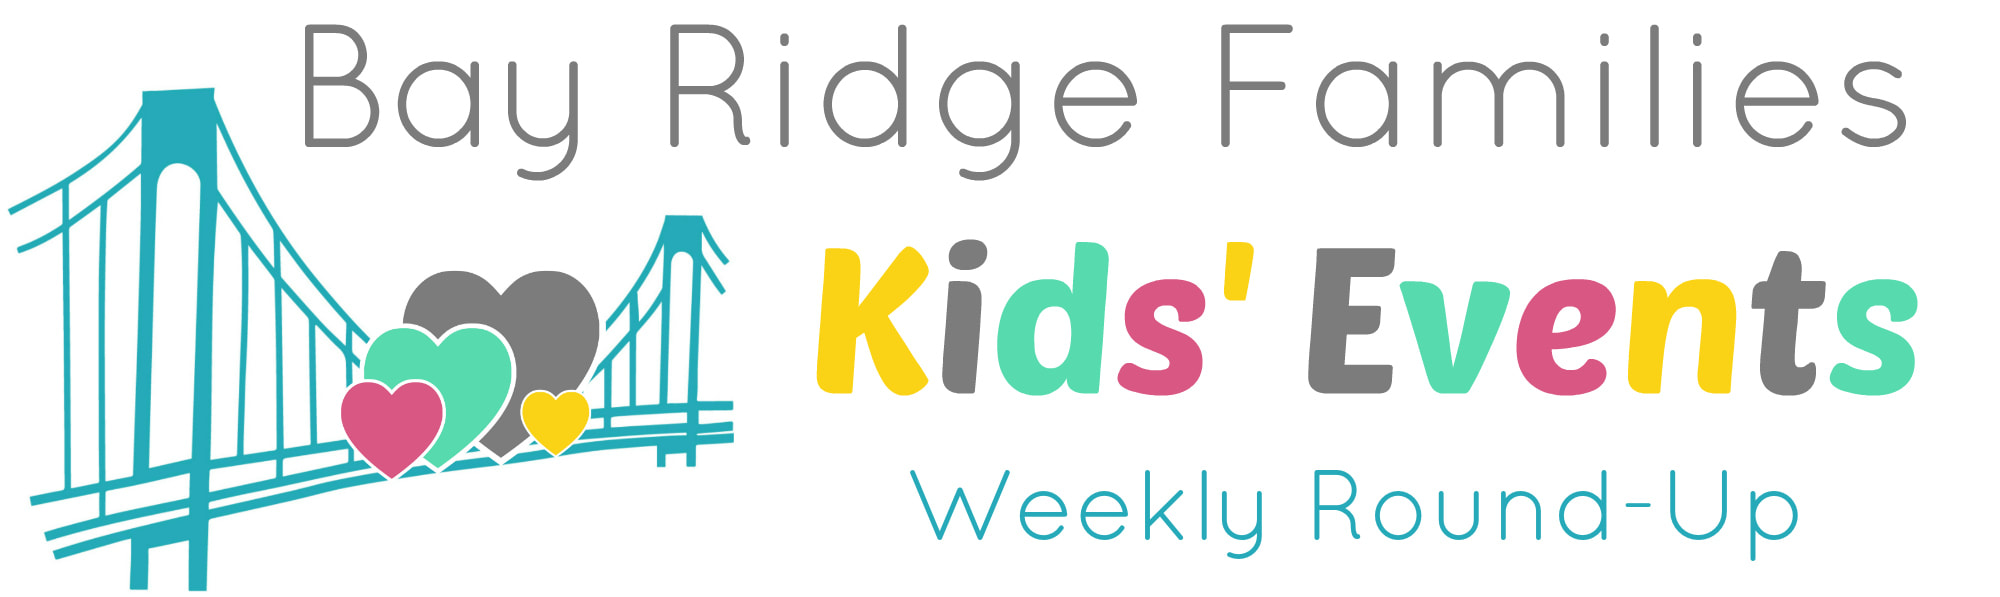 Bay Ridge Area Kids Events Roundup for the week of January 11 - 17, 2018